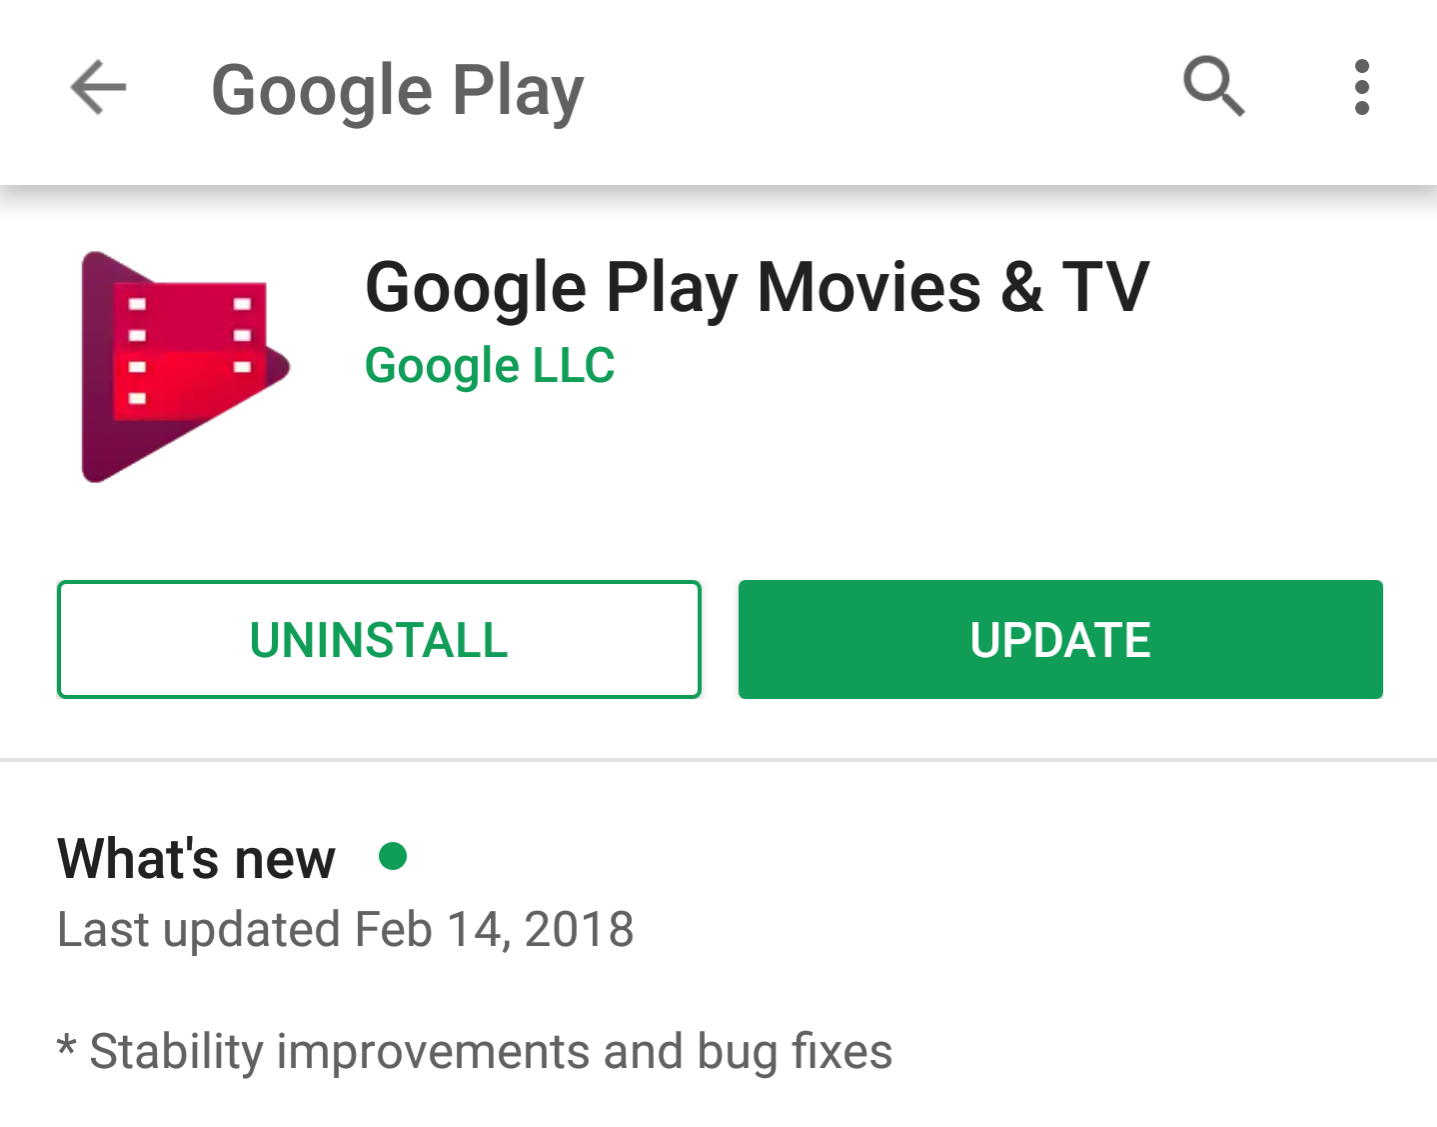 Update: One more design] Google testing a colorless shapeless Play ...